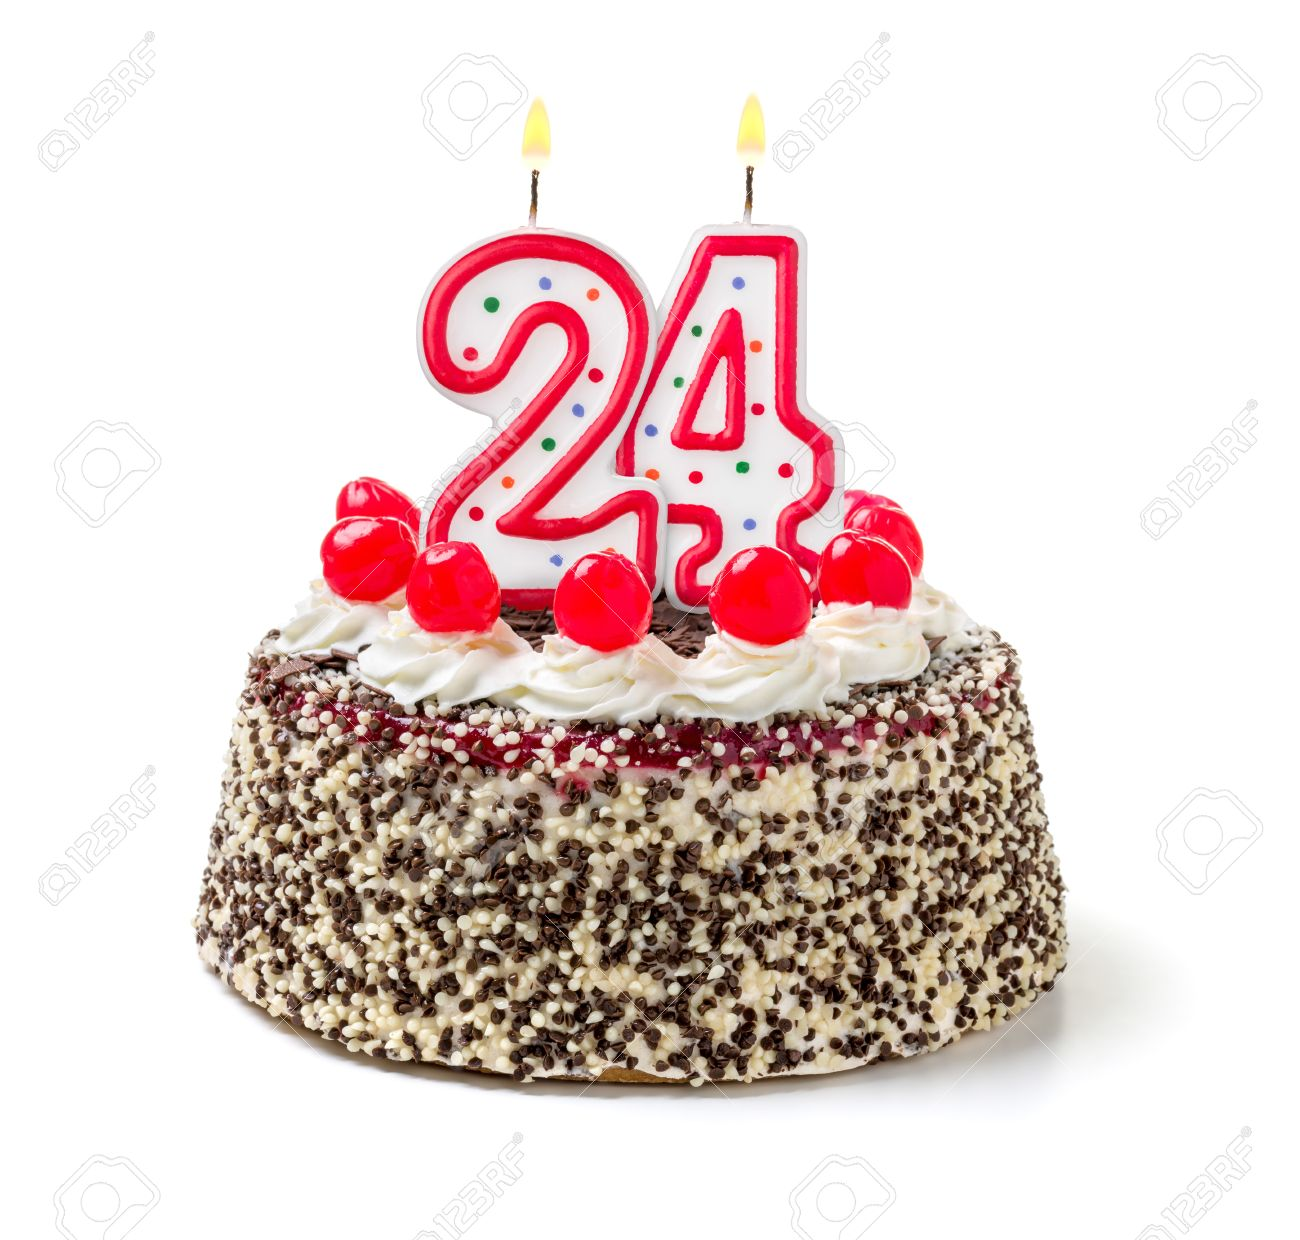 Birthday Cake With Burning Candle Number 24 Stock Photo